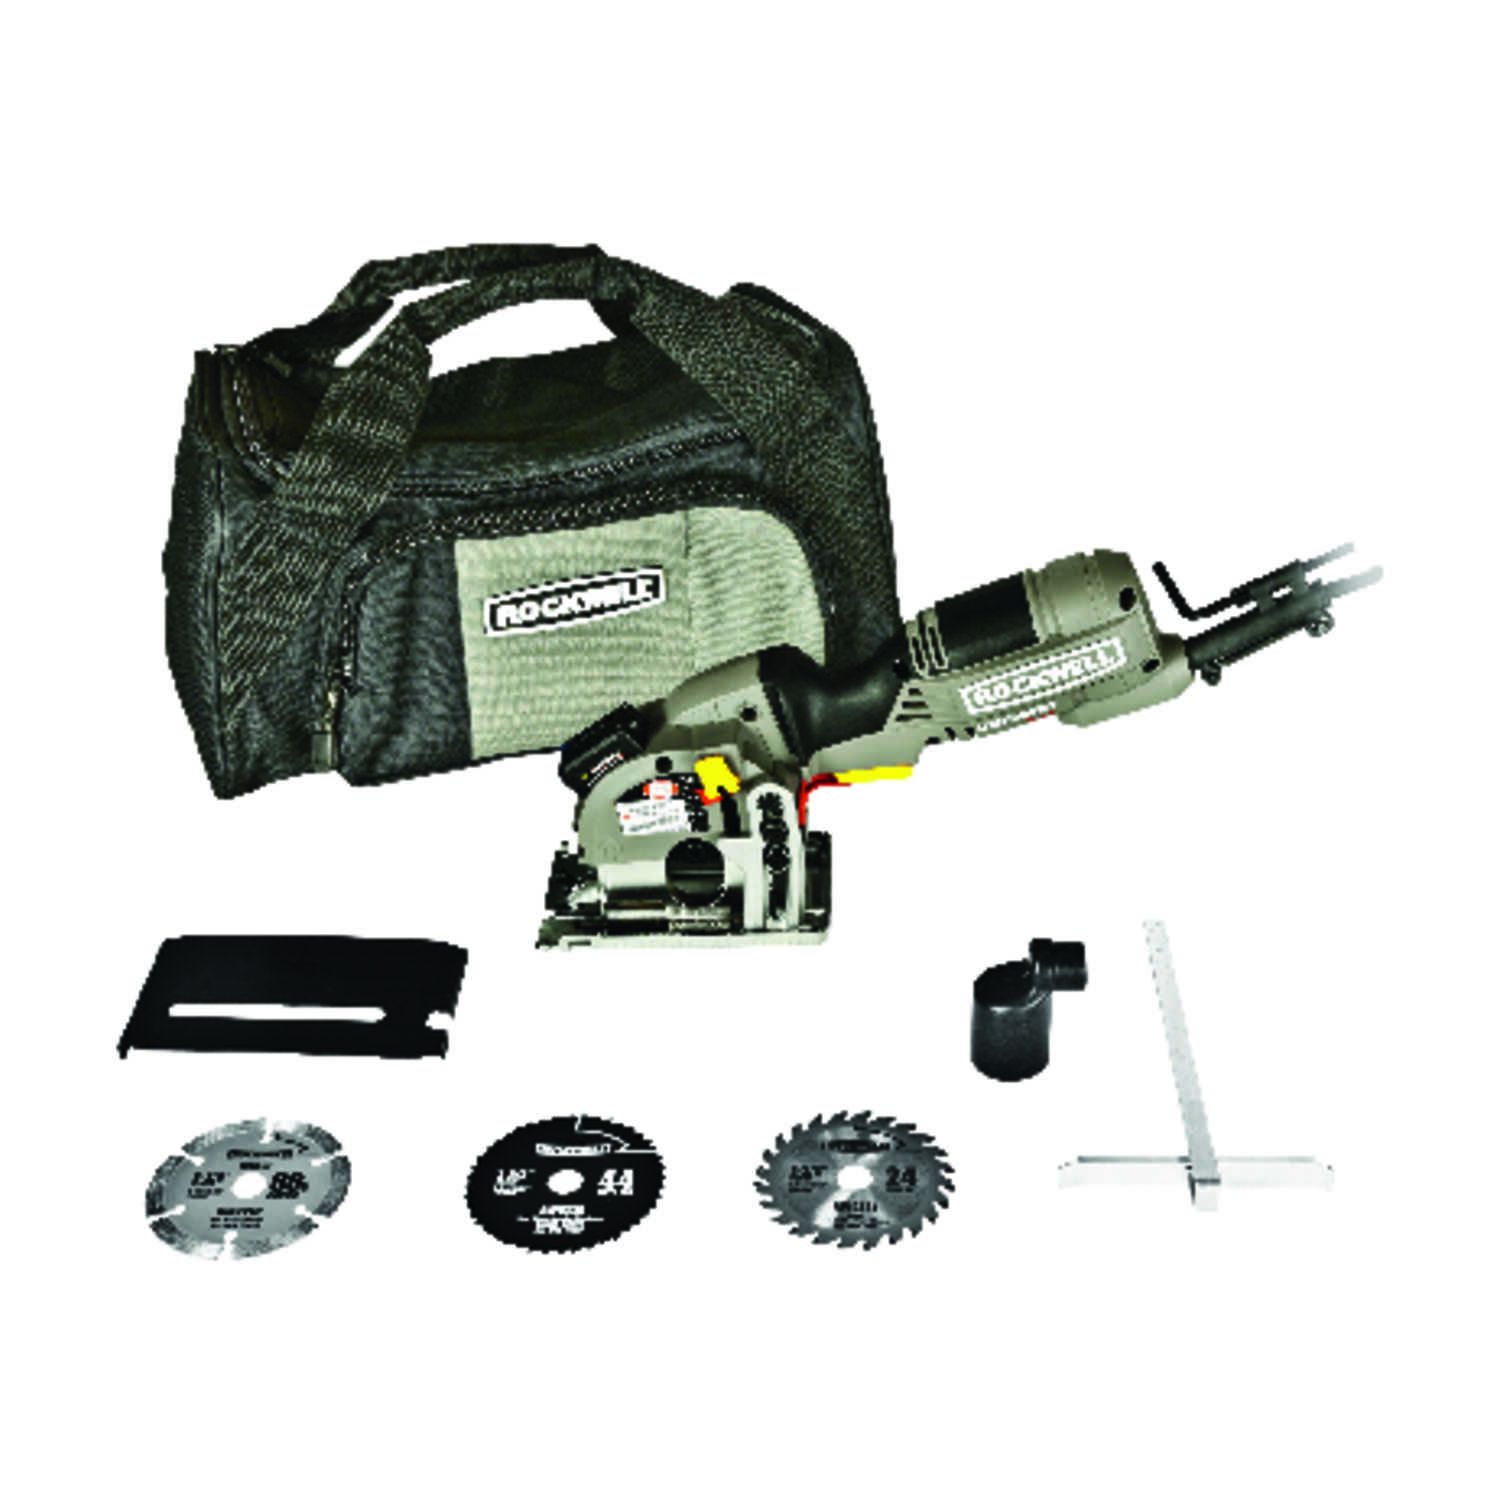 Rockwell Versacut Mini 3-1/2 in. 120 volt 4 amps Corded Circular Saw 3500 rpm